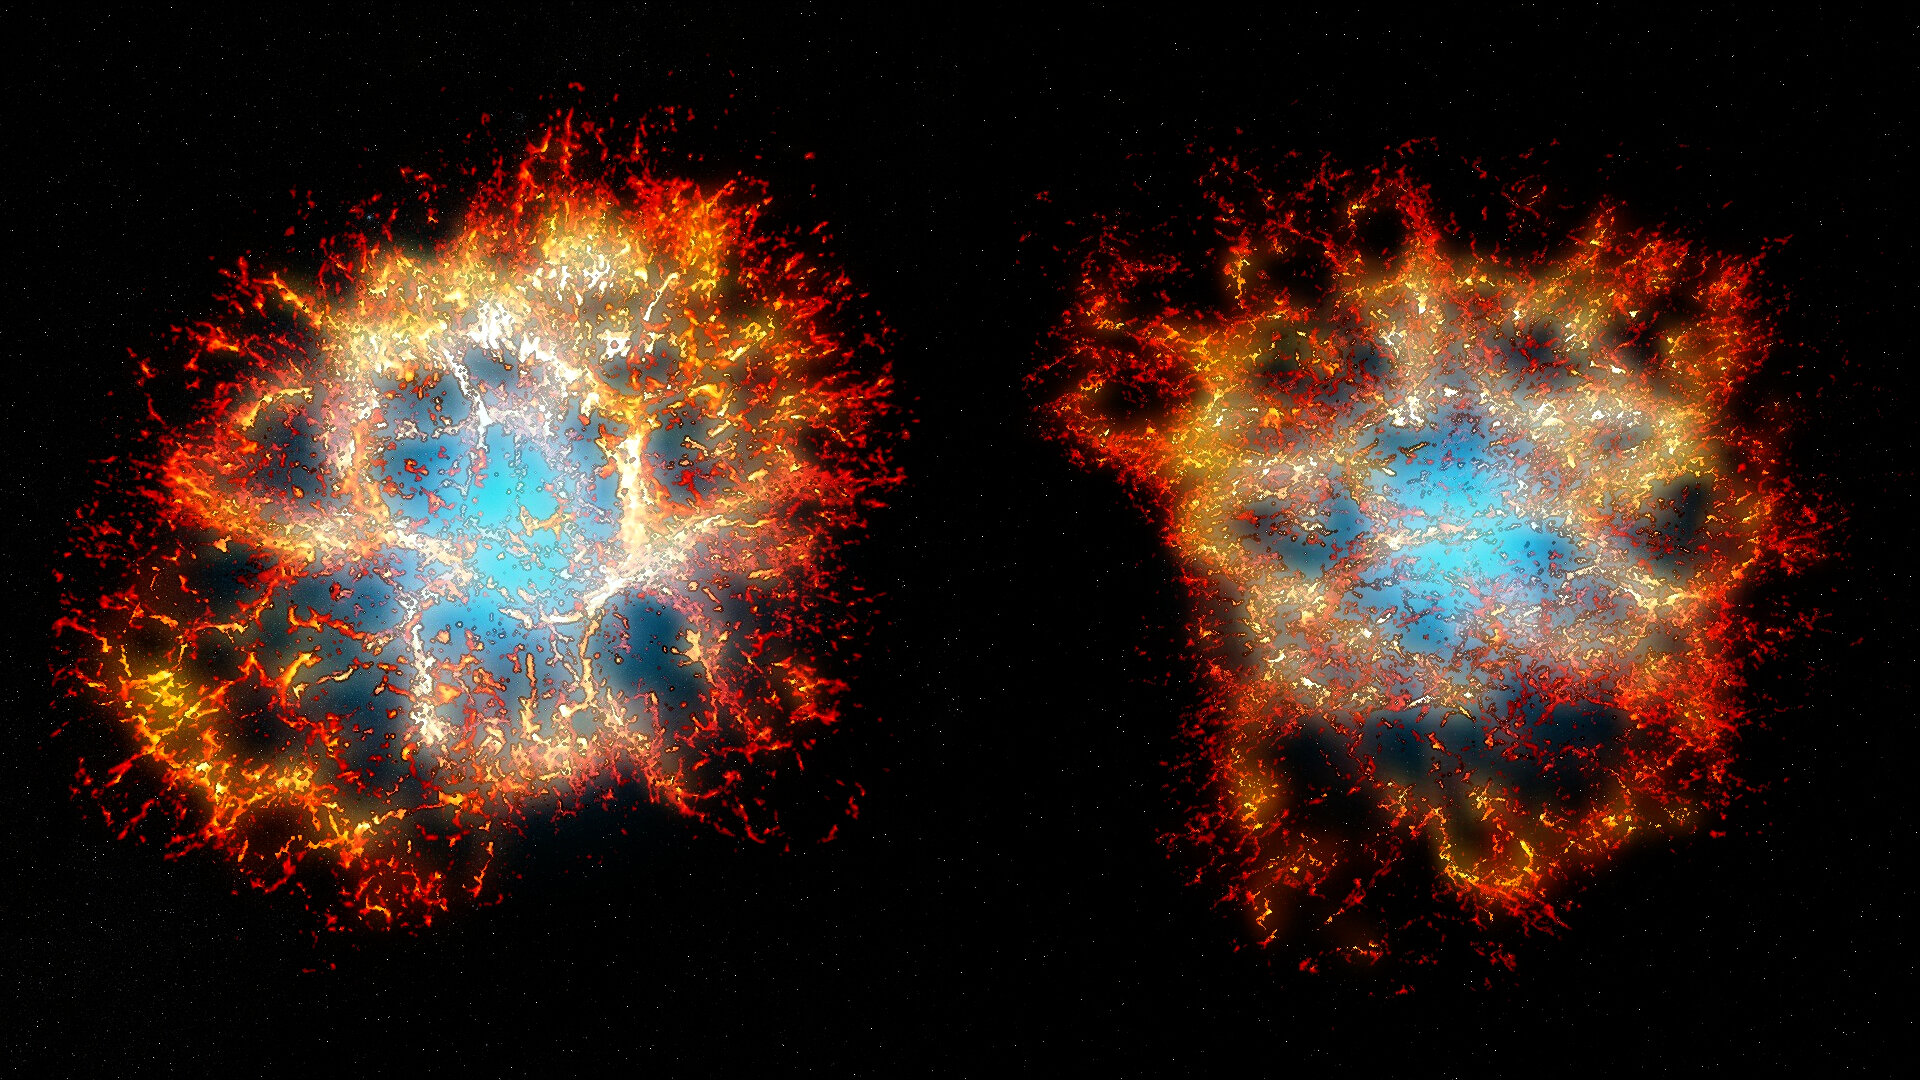 Spectacular 'honeycomb heart' revealed in iconic stellar explosion - Phys.org